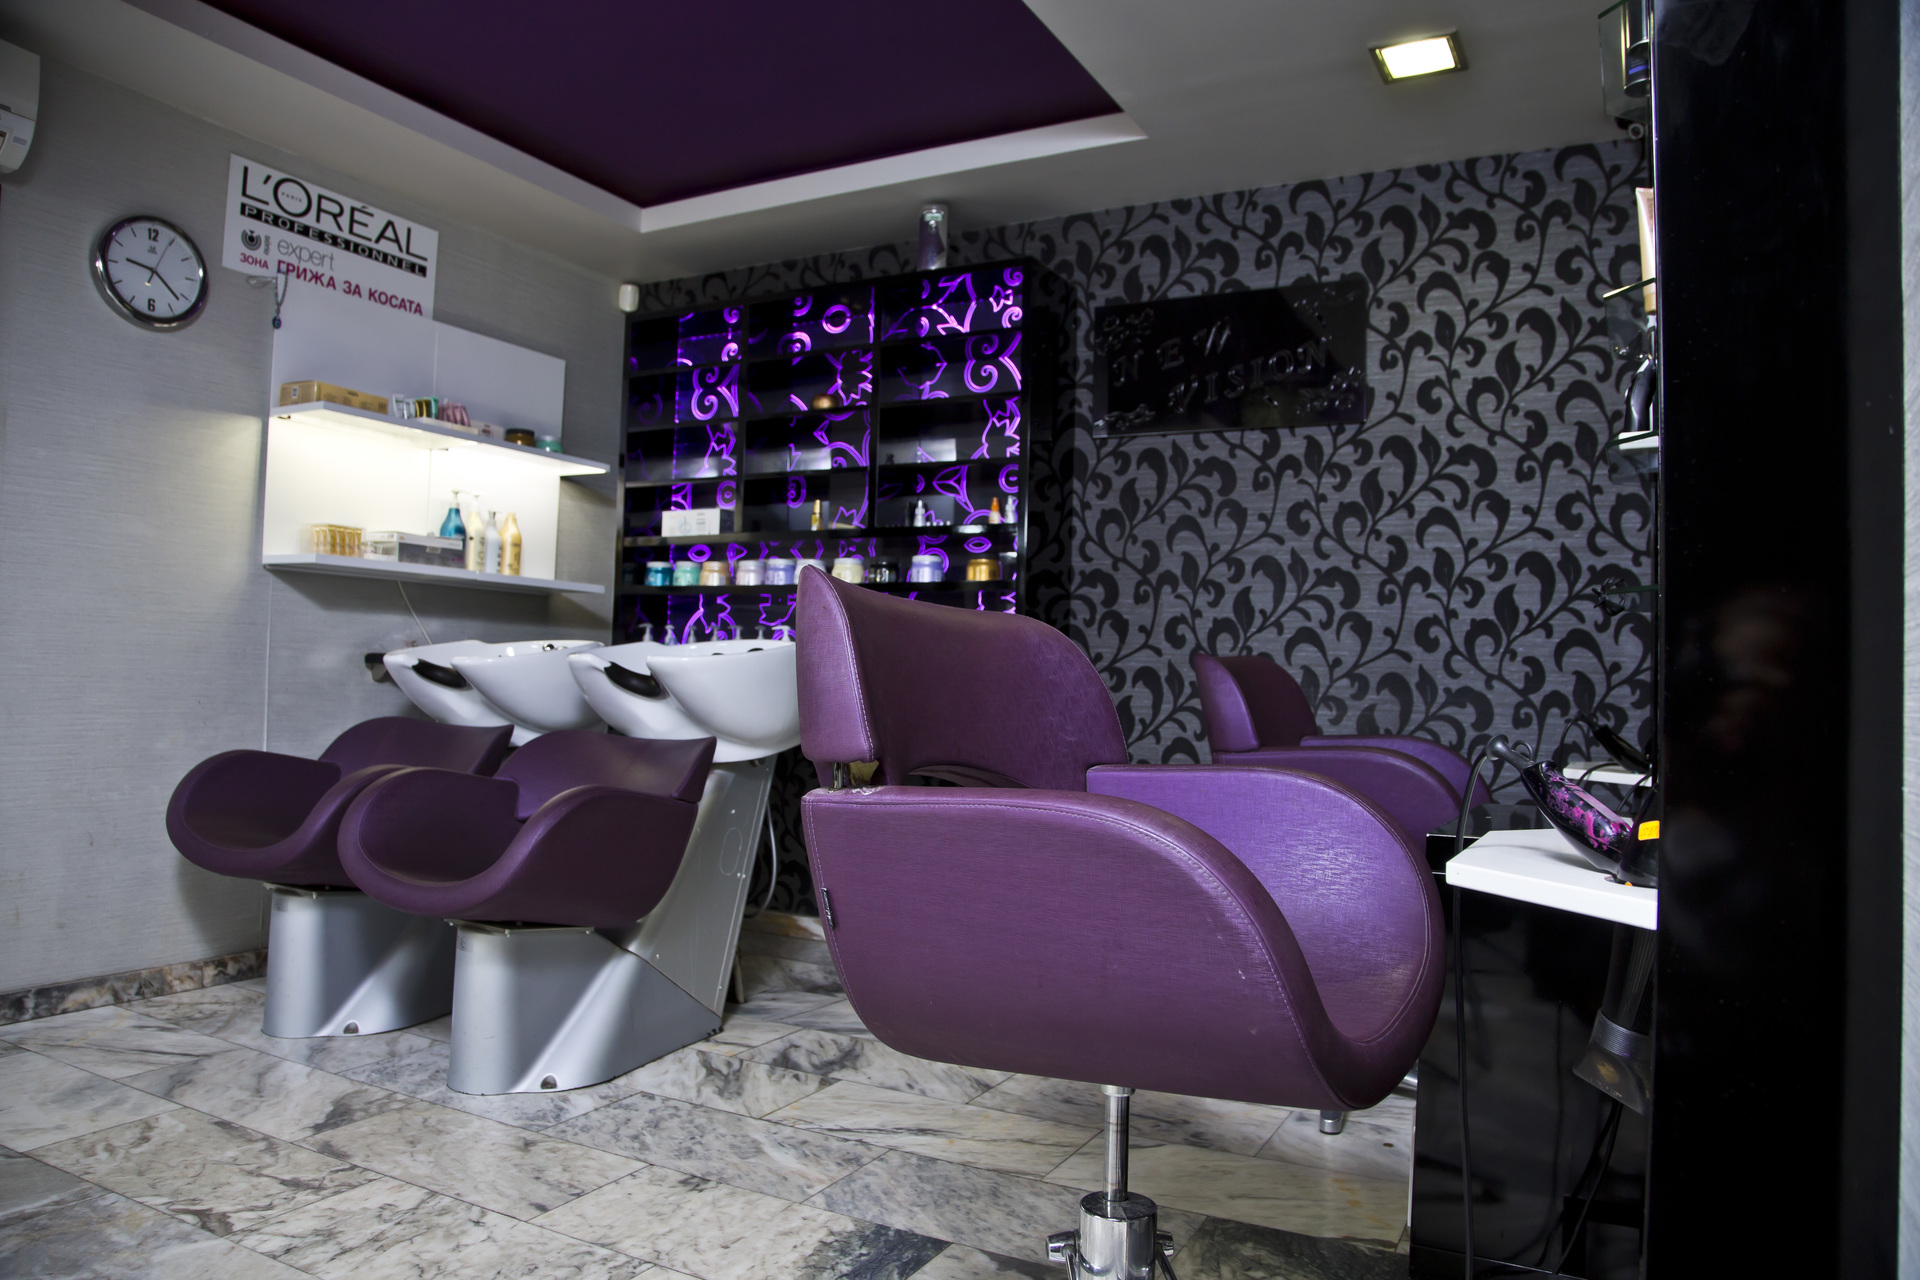 Mebelgroup shops a hair dressing salon vision sofia for A visionary salon